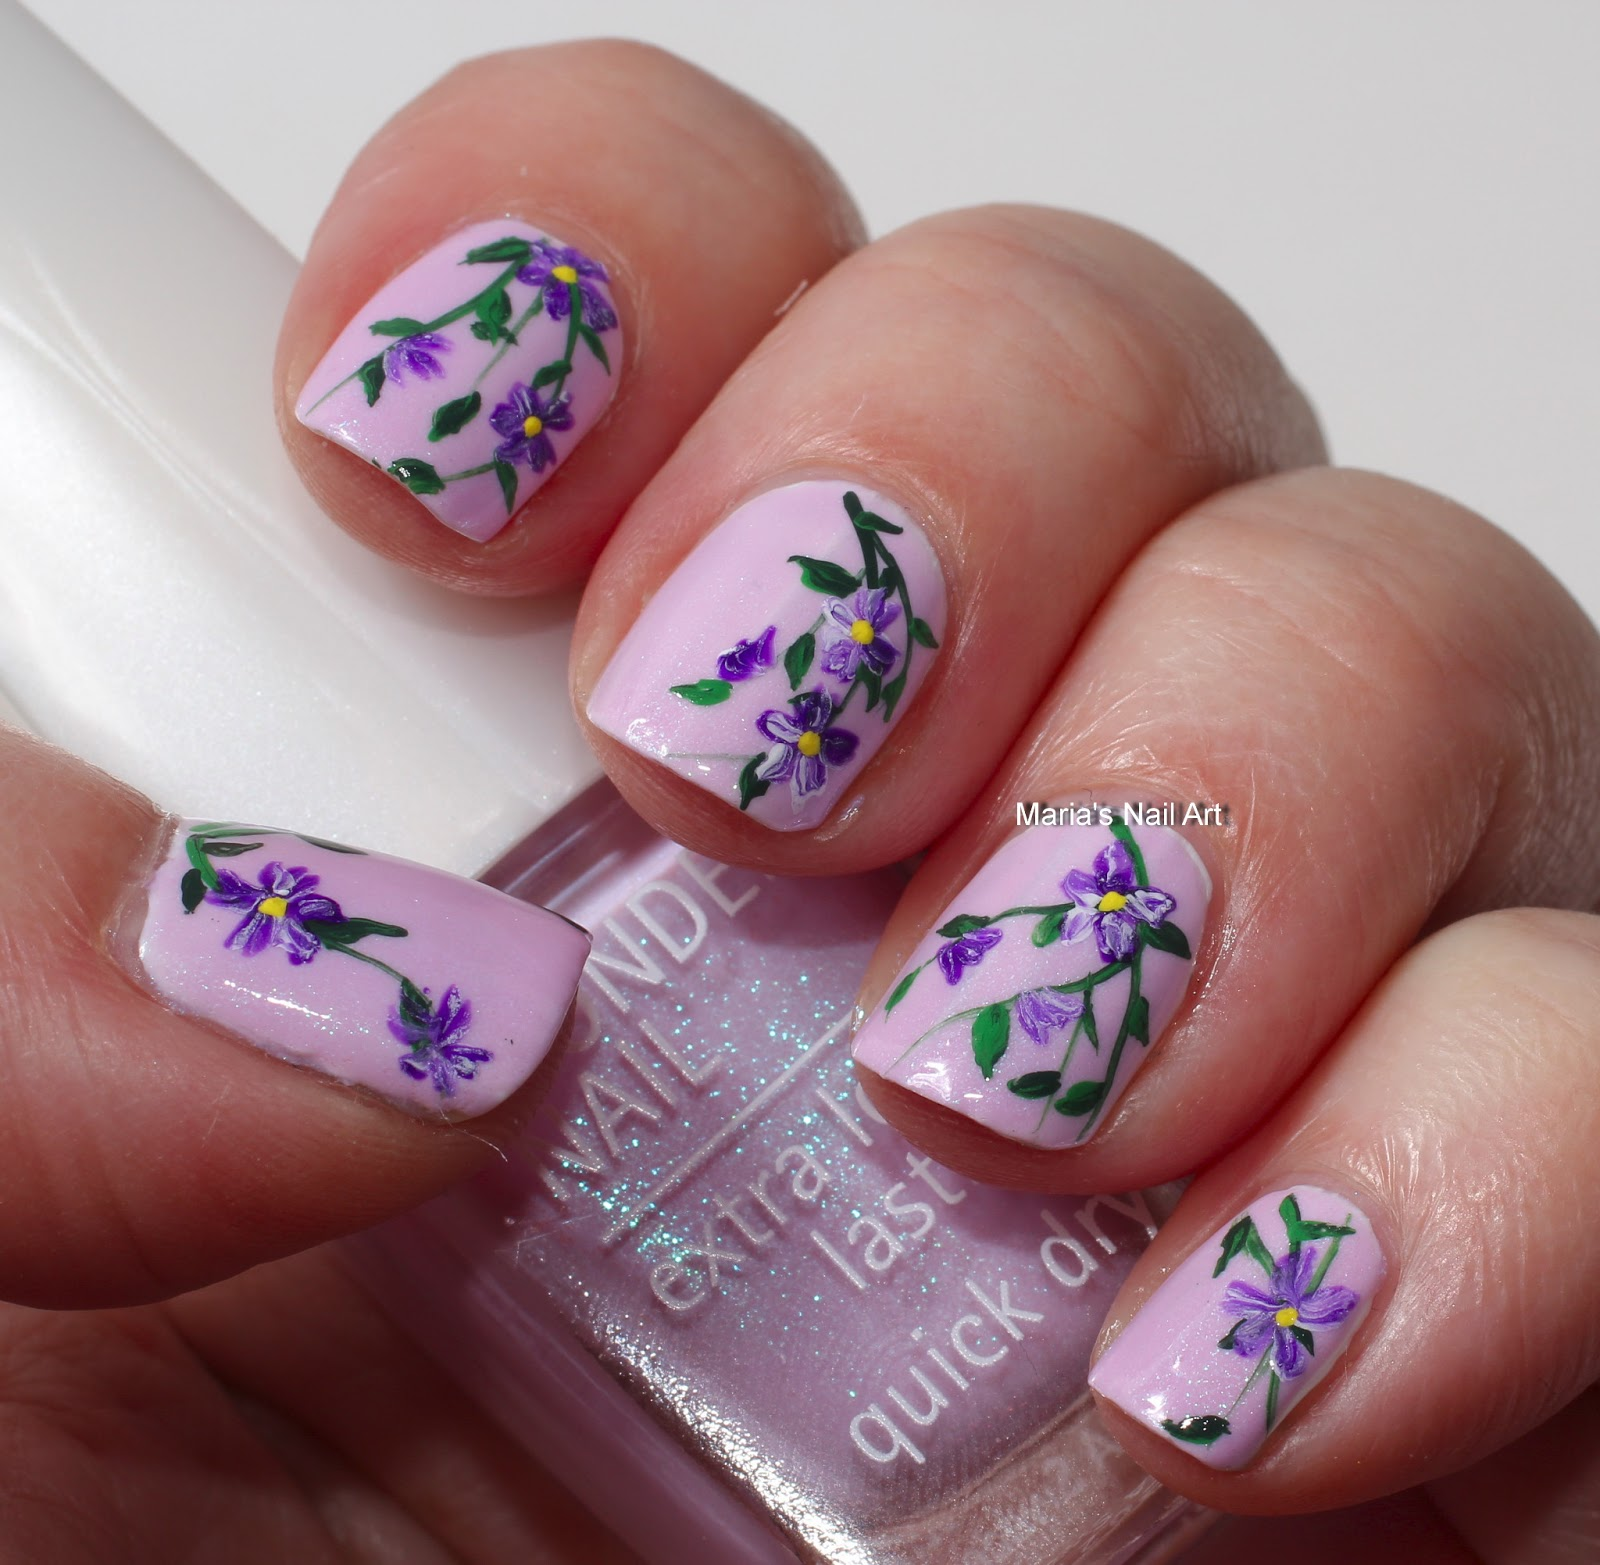 Flower Nail Art: Marias Nail Art And Polish Blog: Flowers On Icy Lilac In